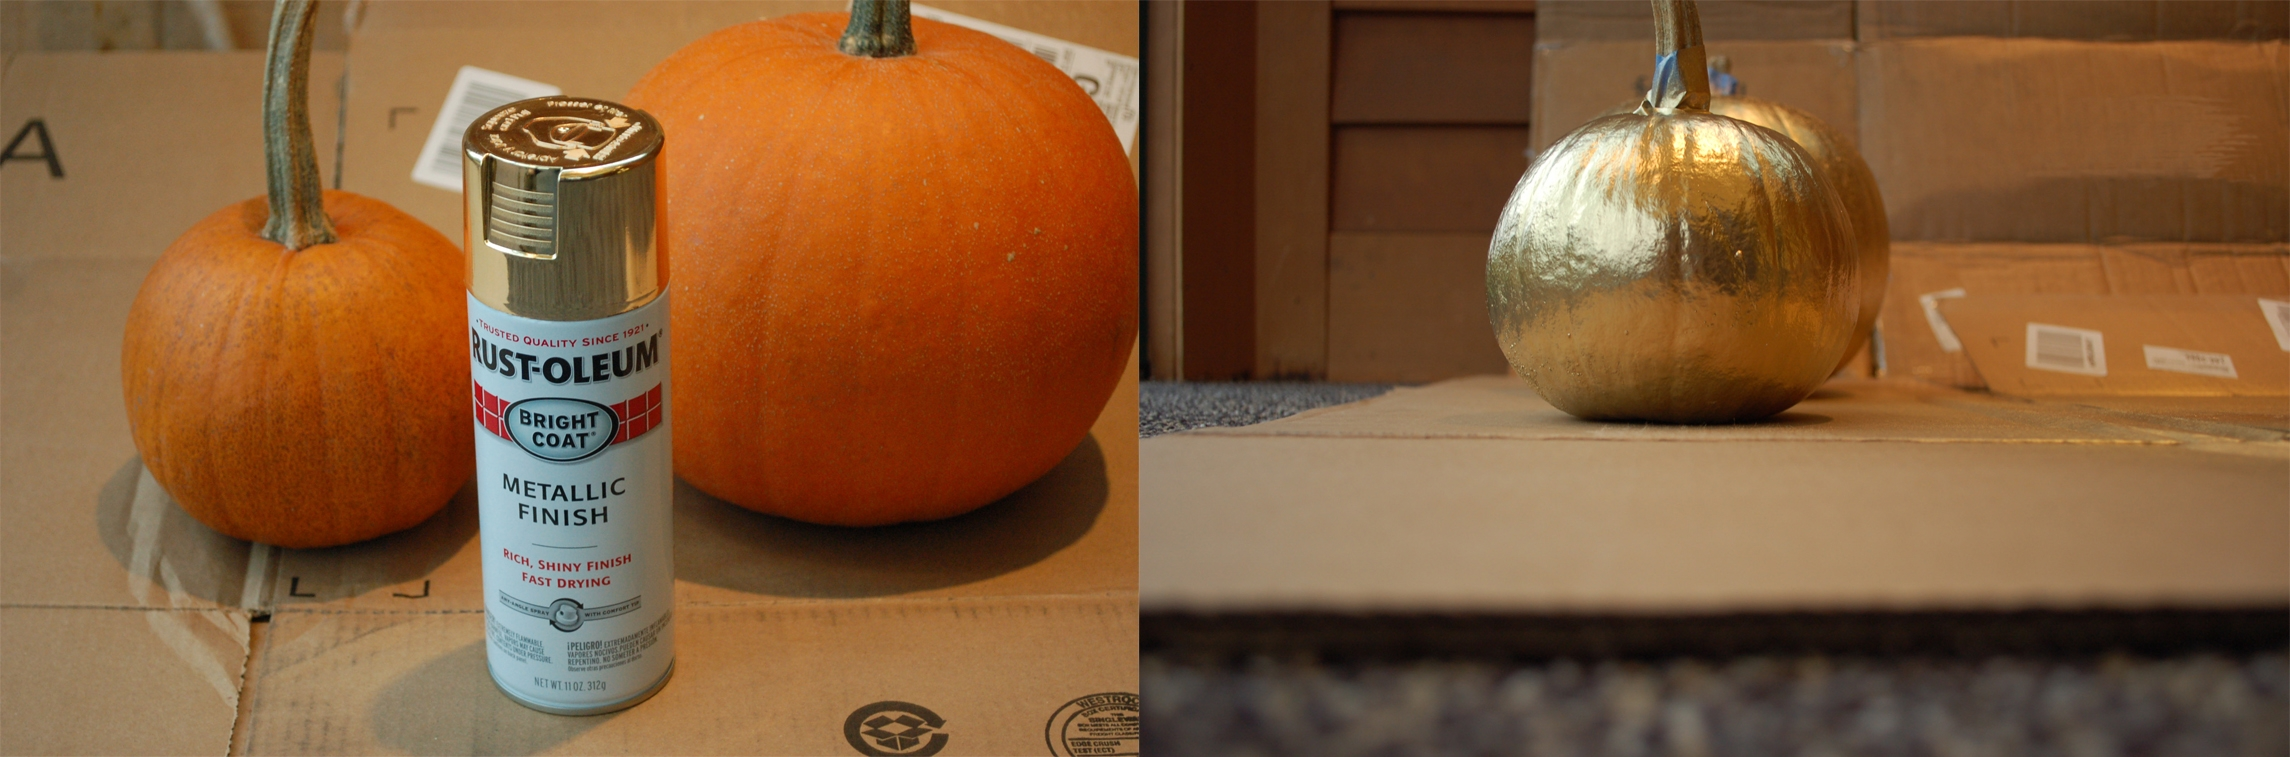 Spraying Pumpkins with Gold Paint